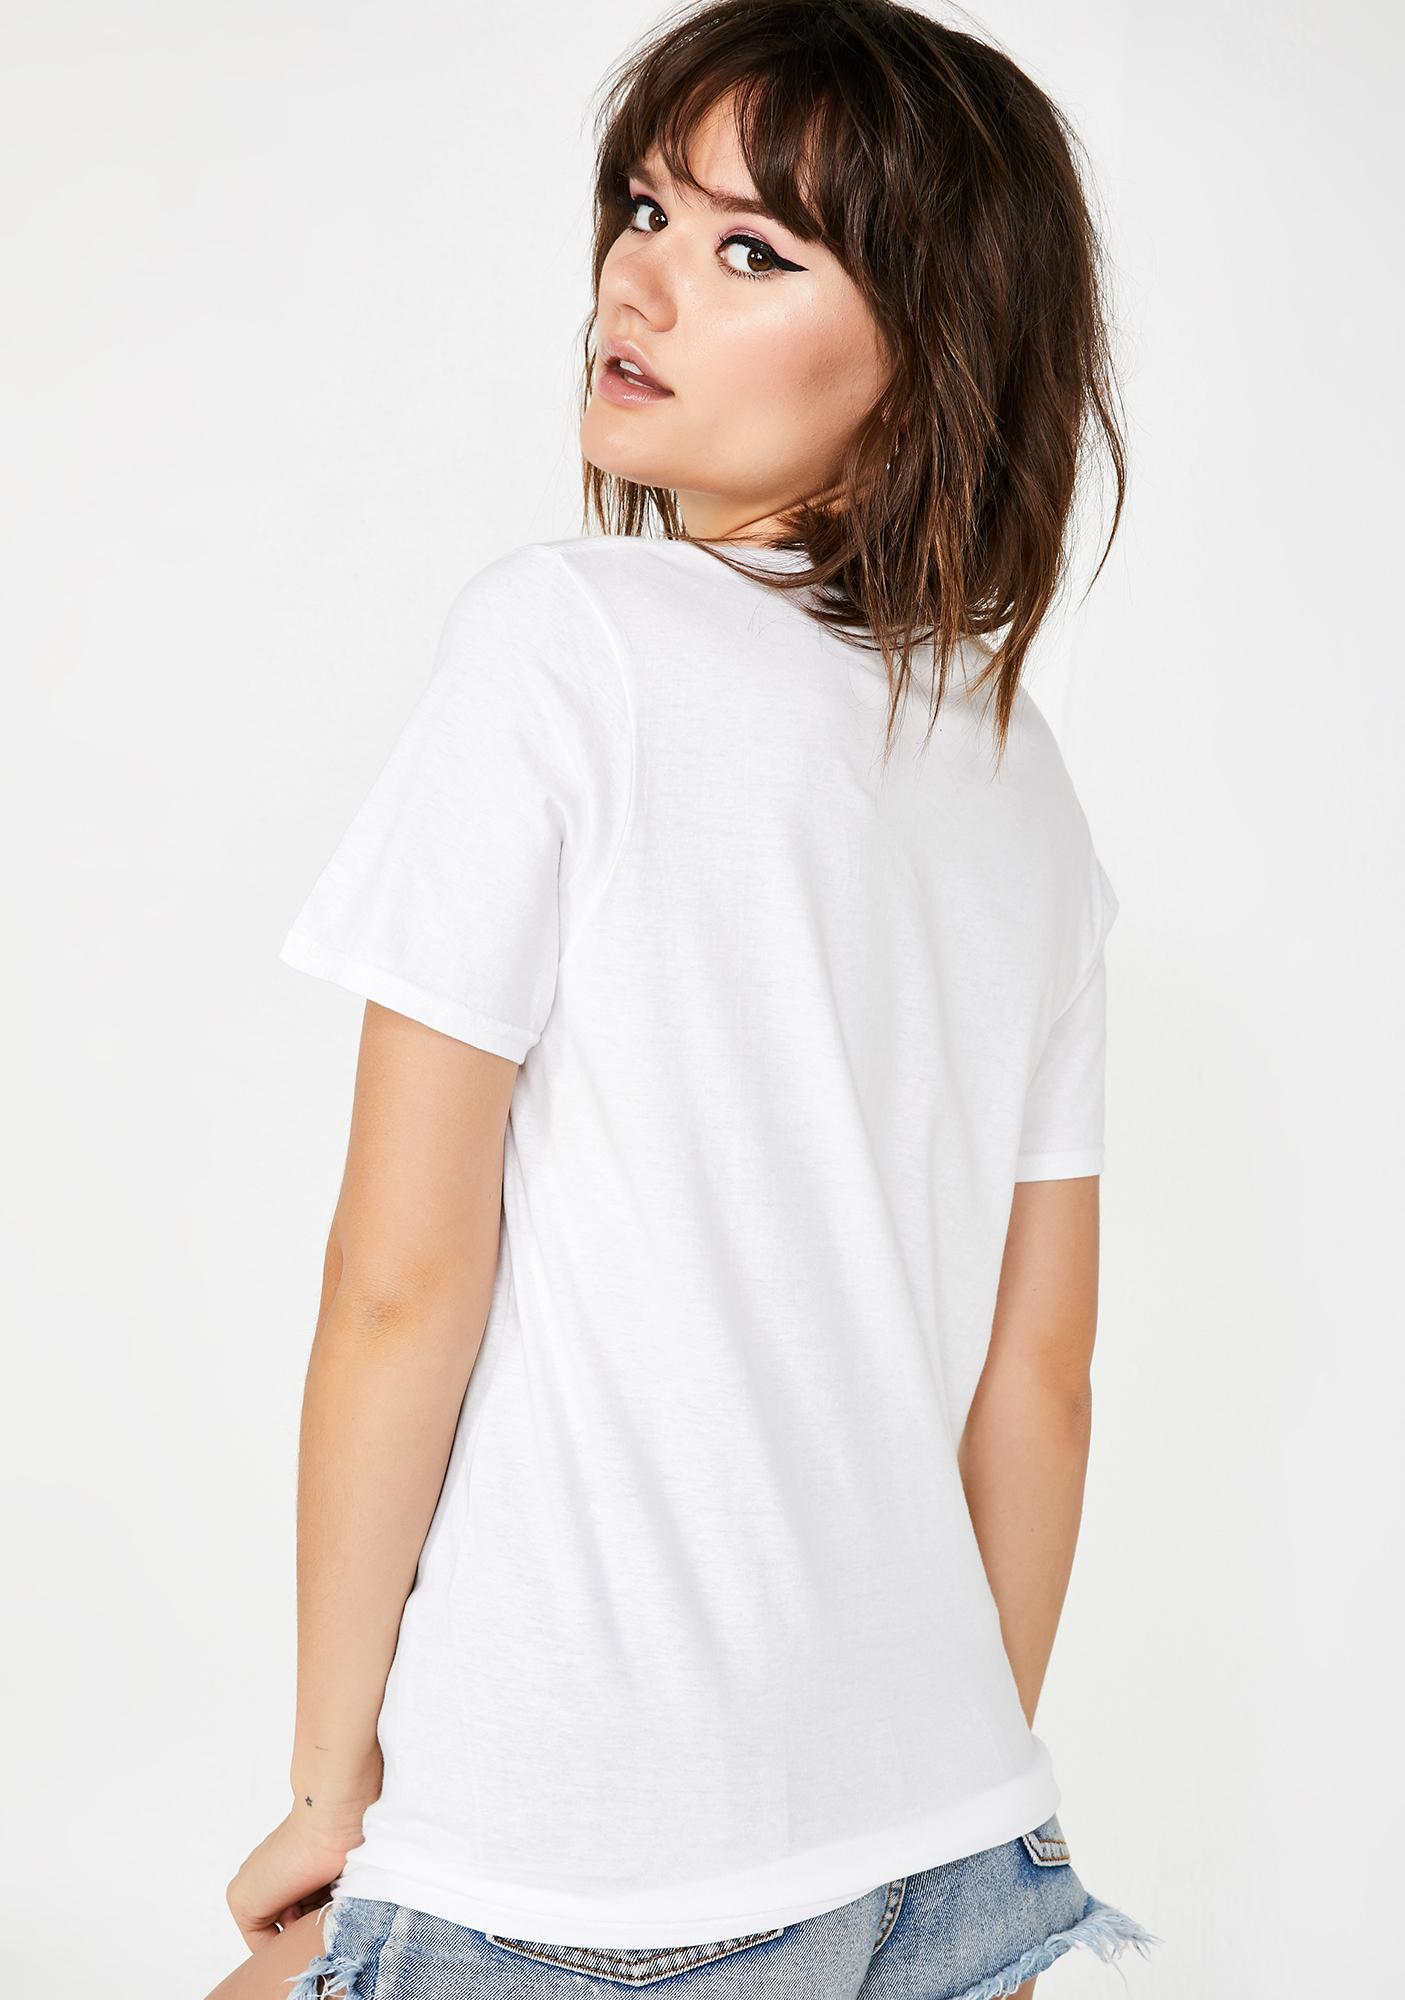 Skinnydip High Standards T-Shirt